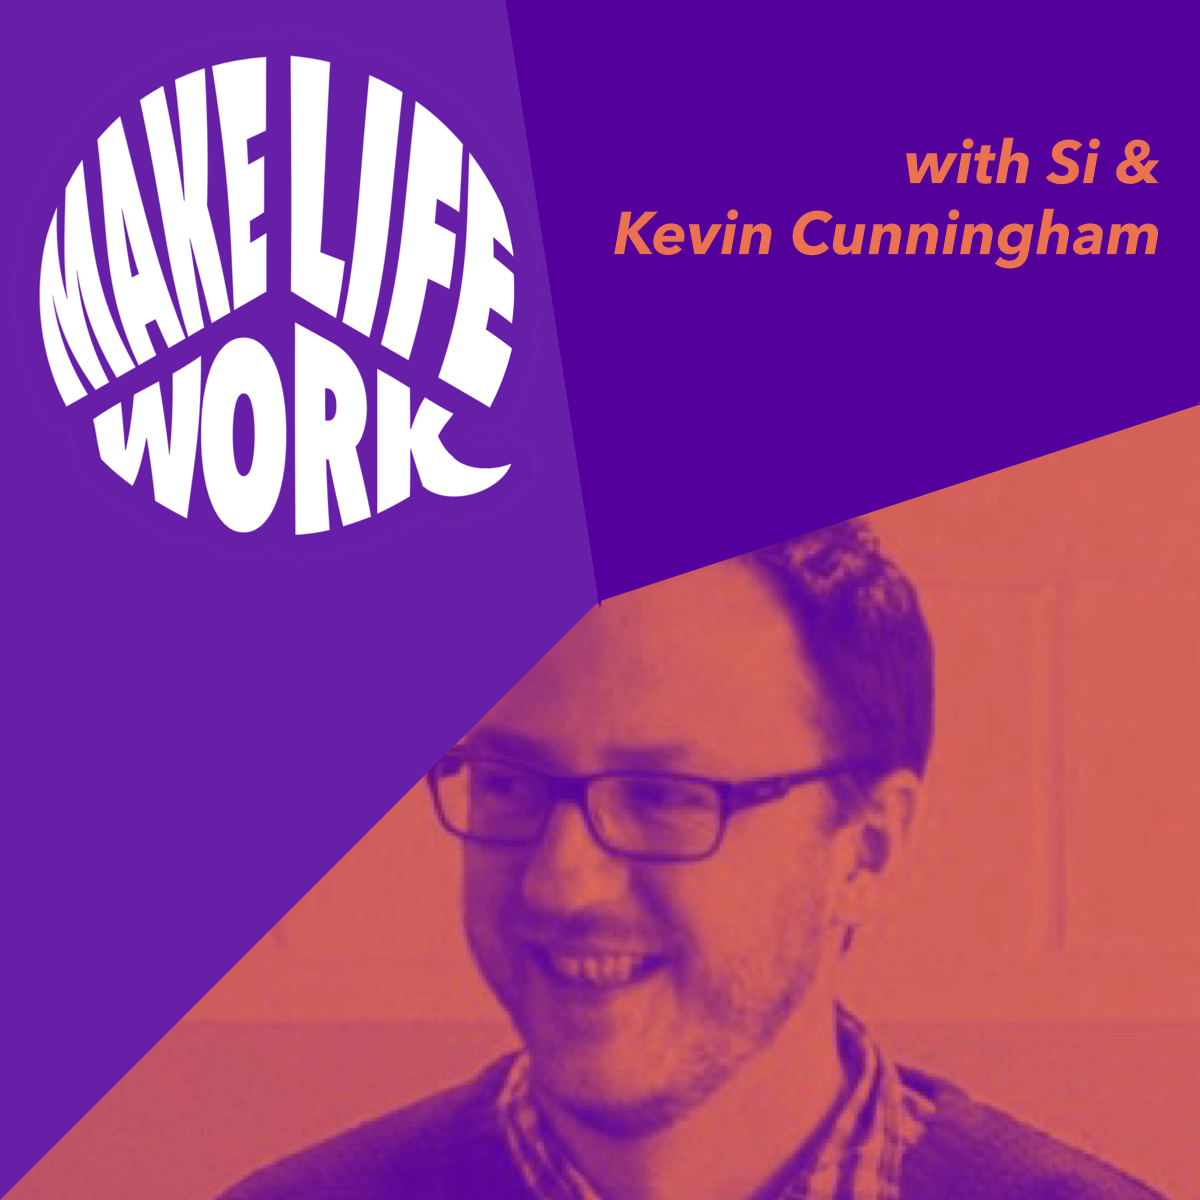 Make Life Work with Kevin Cunningham